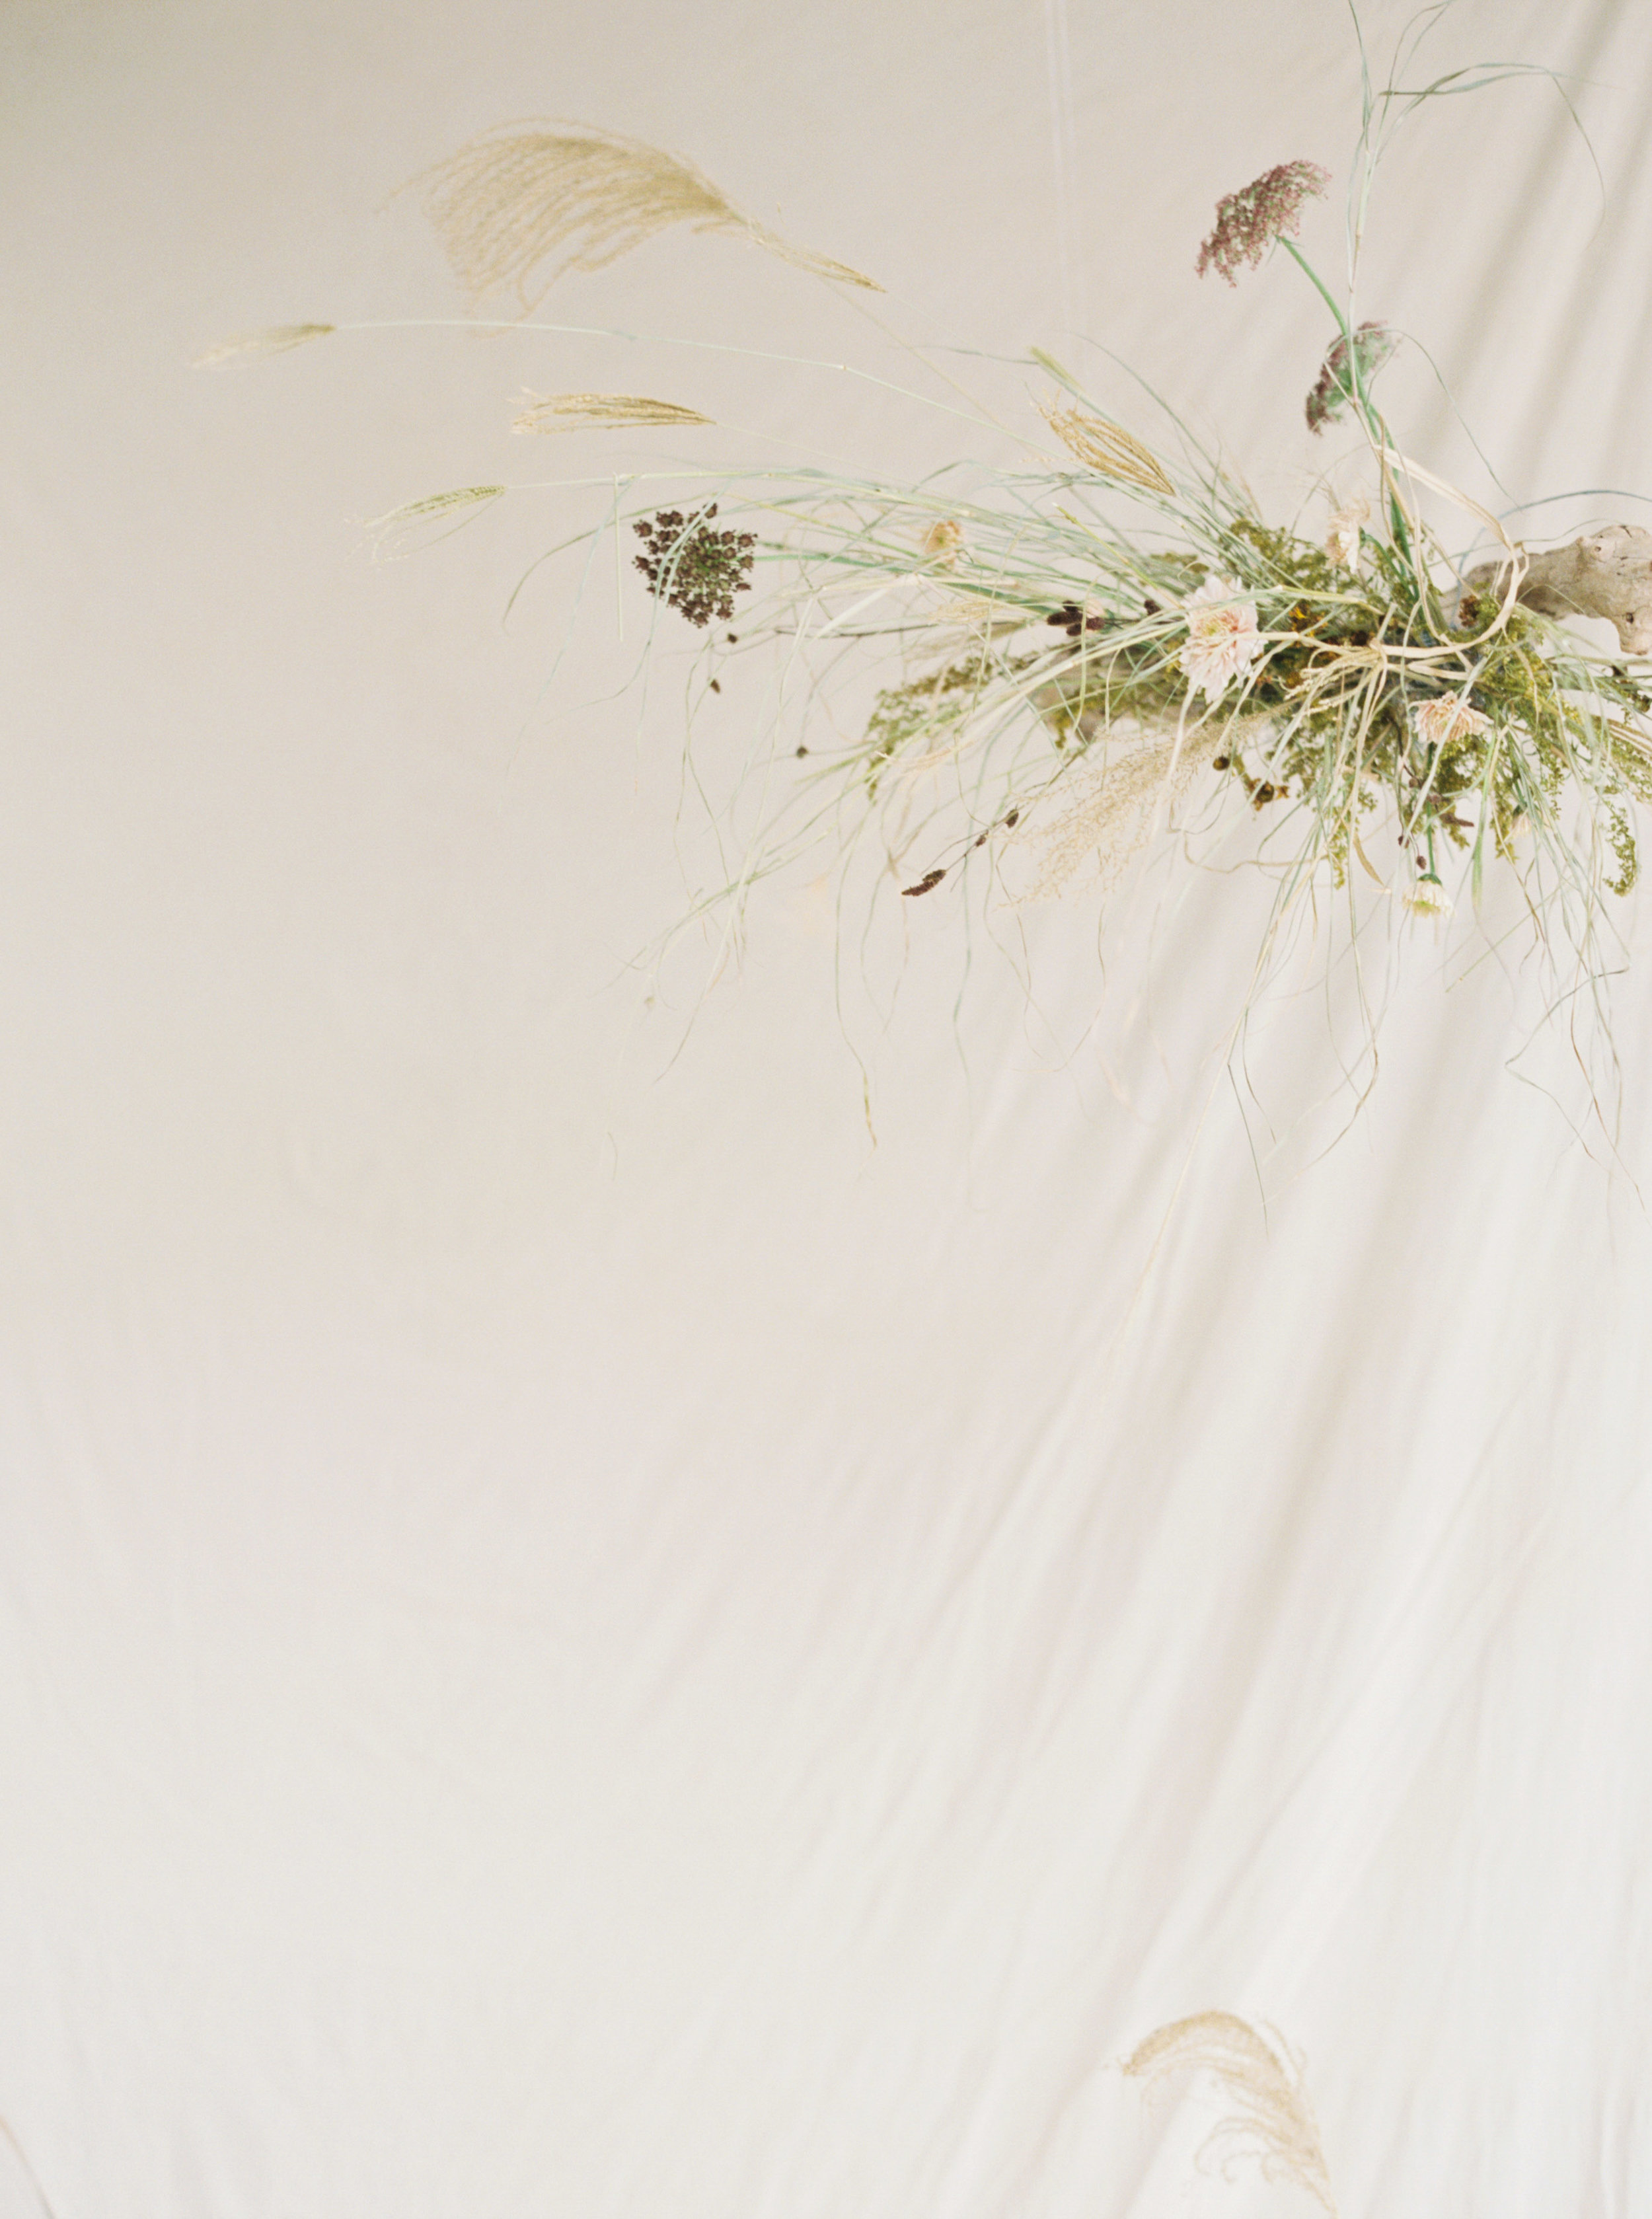 Copy of Autumn colour tones of artisian dried flower art installation with dreamy wedding ceremony backdrop design with trendy pampas grass